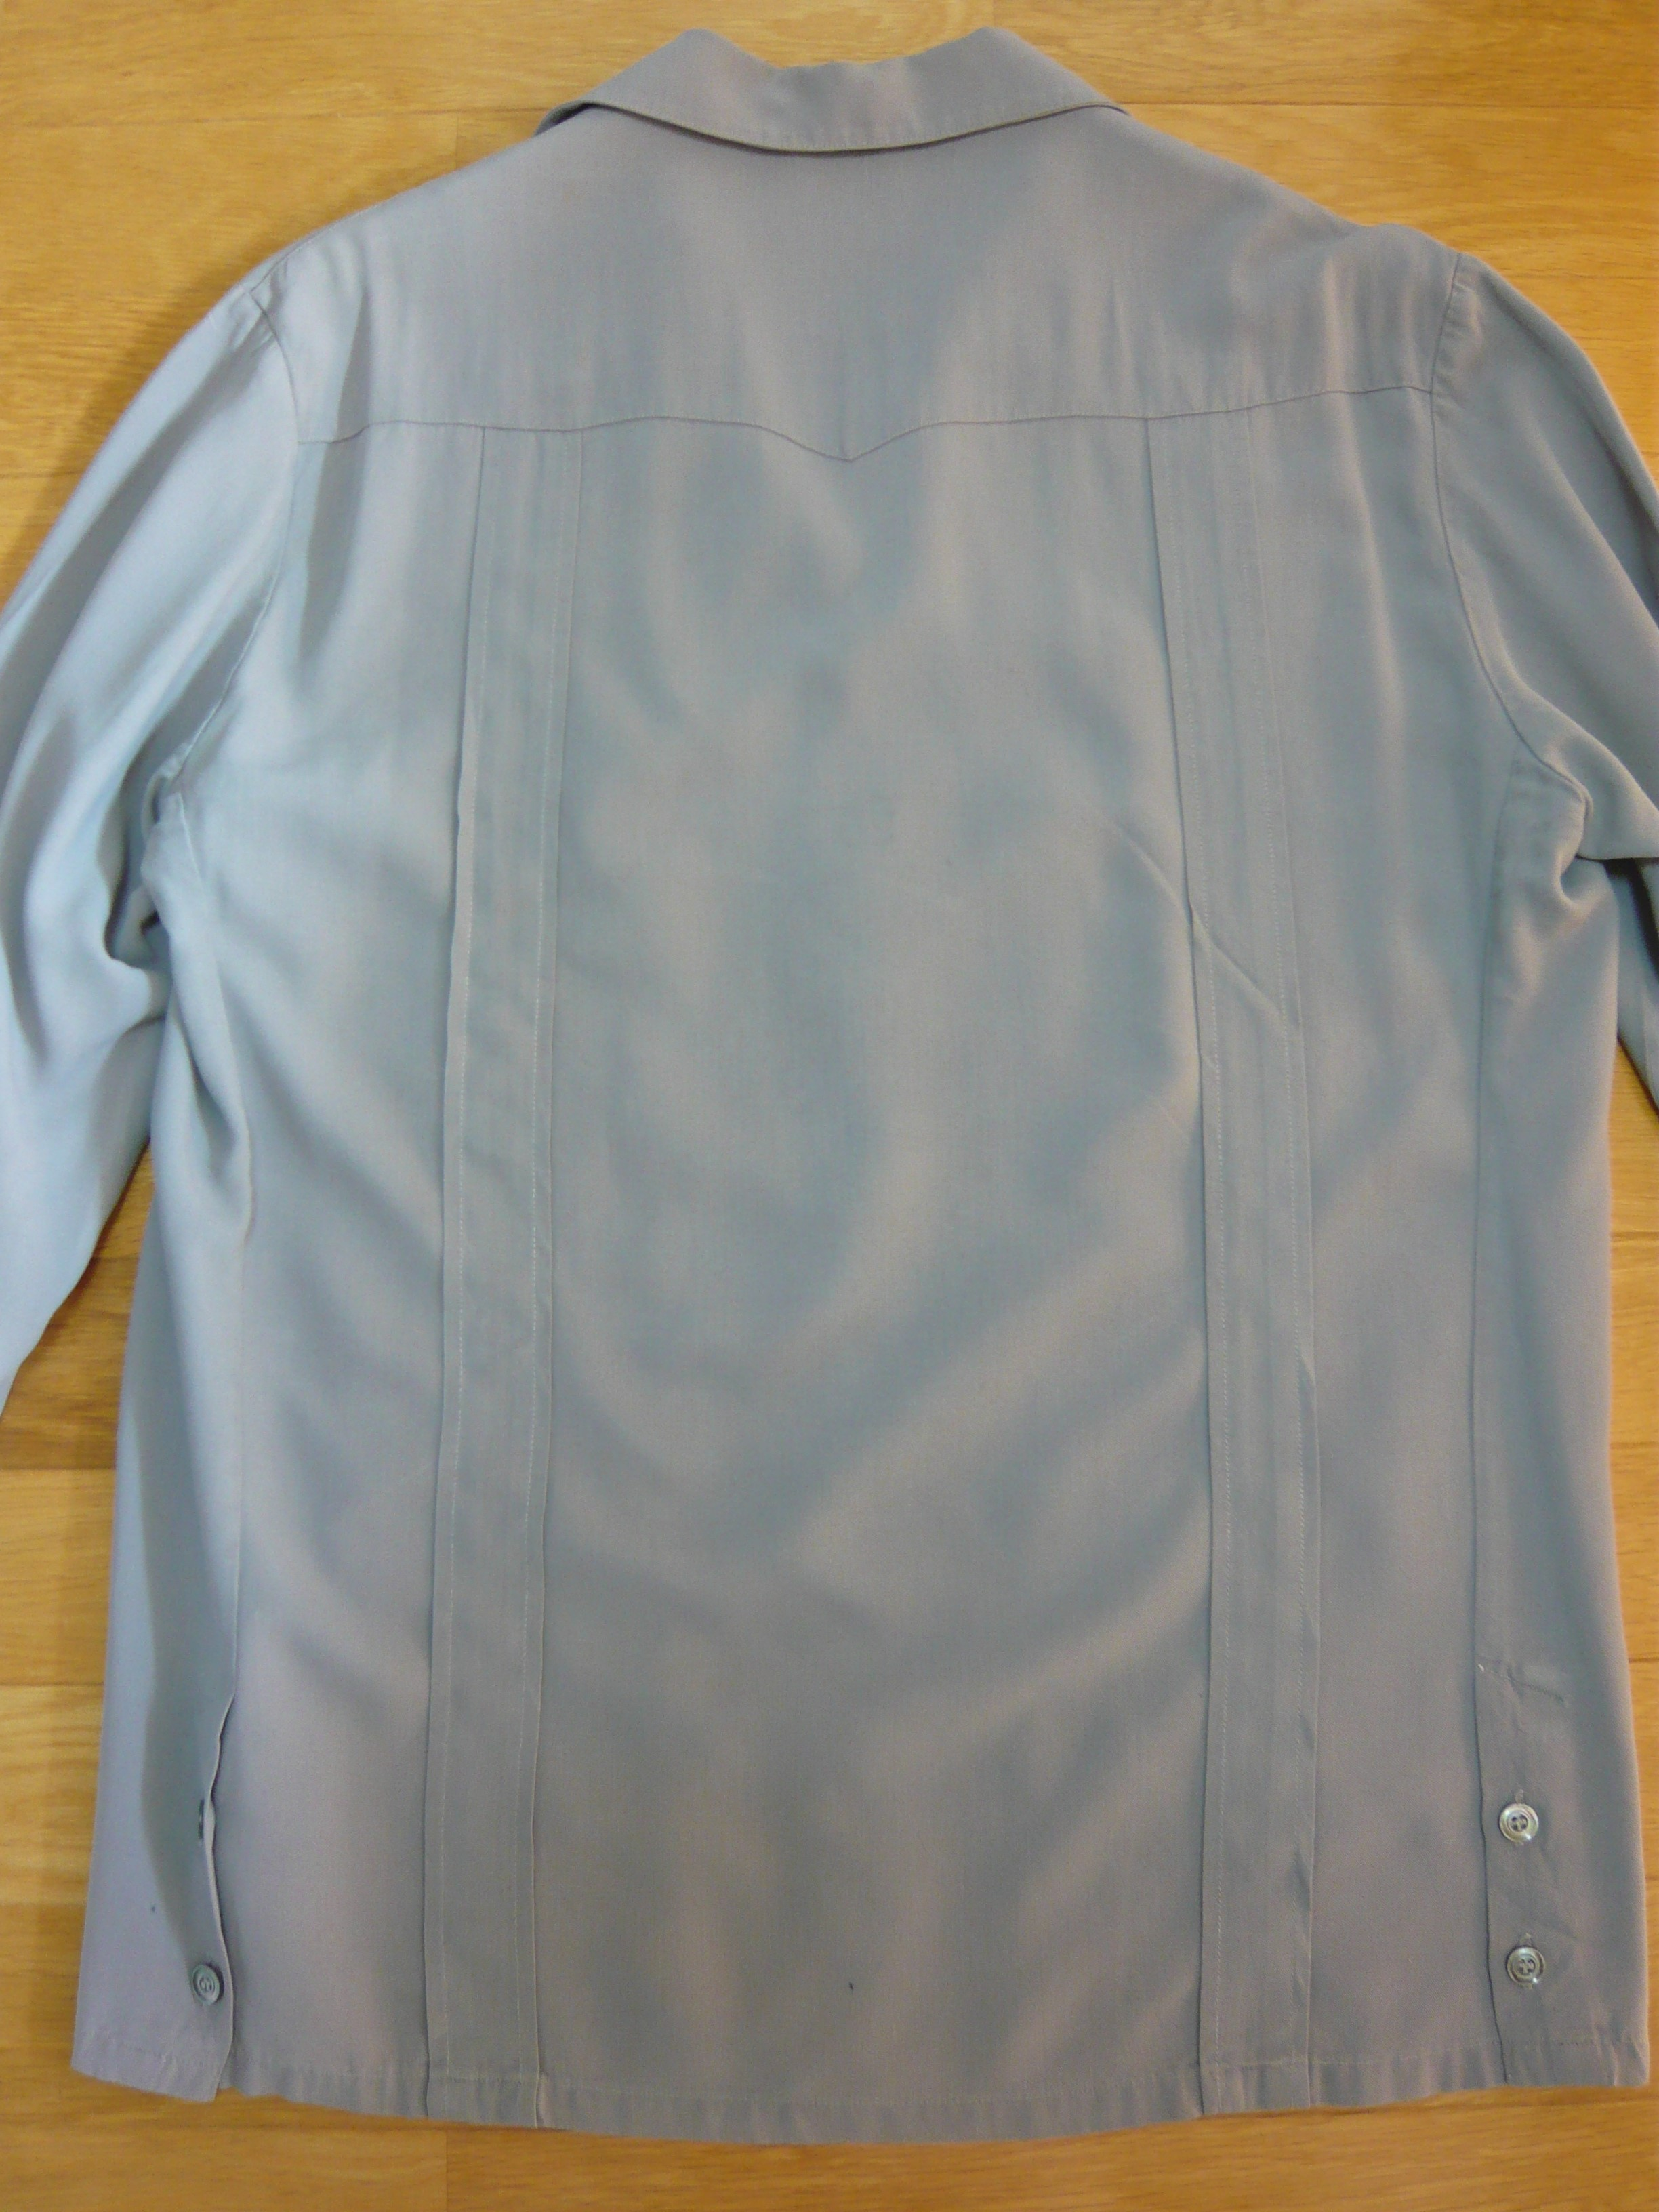 For Sale 50's Gray Rayon Hollywood Jacket | Ol'days Style Vintage Diary